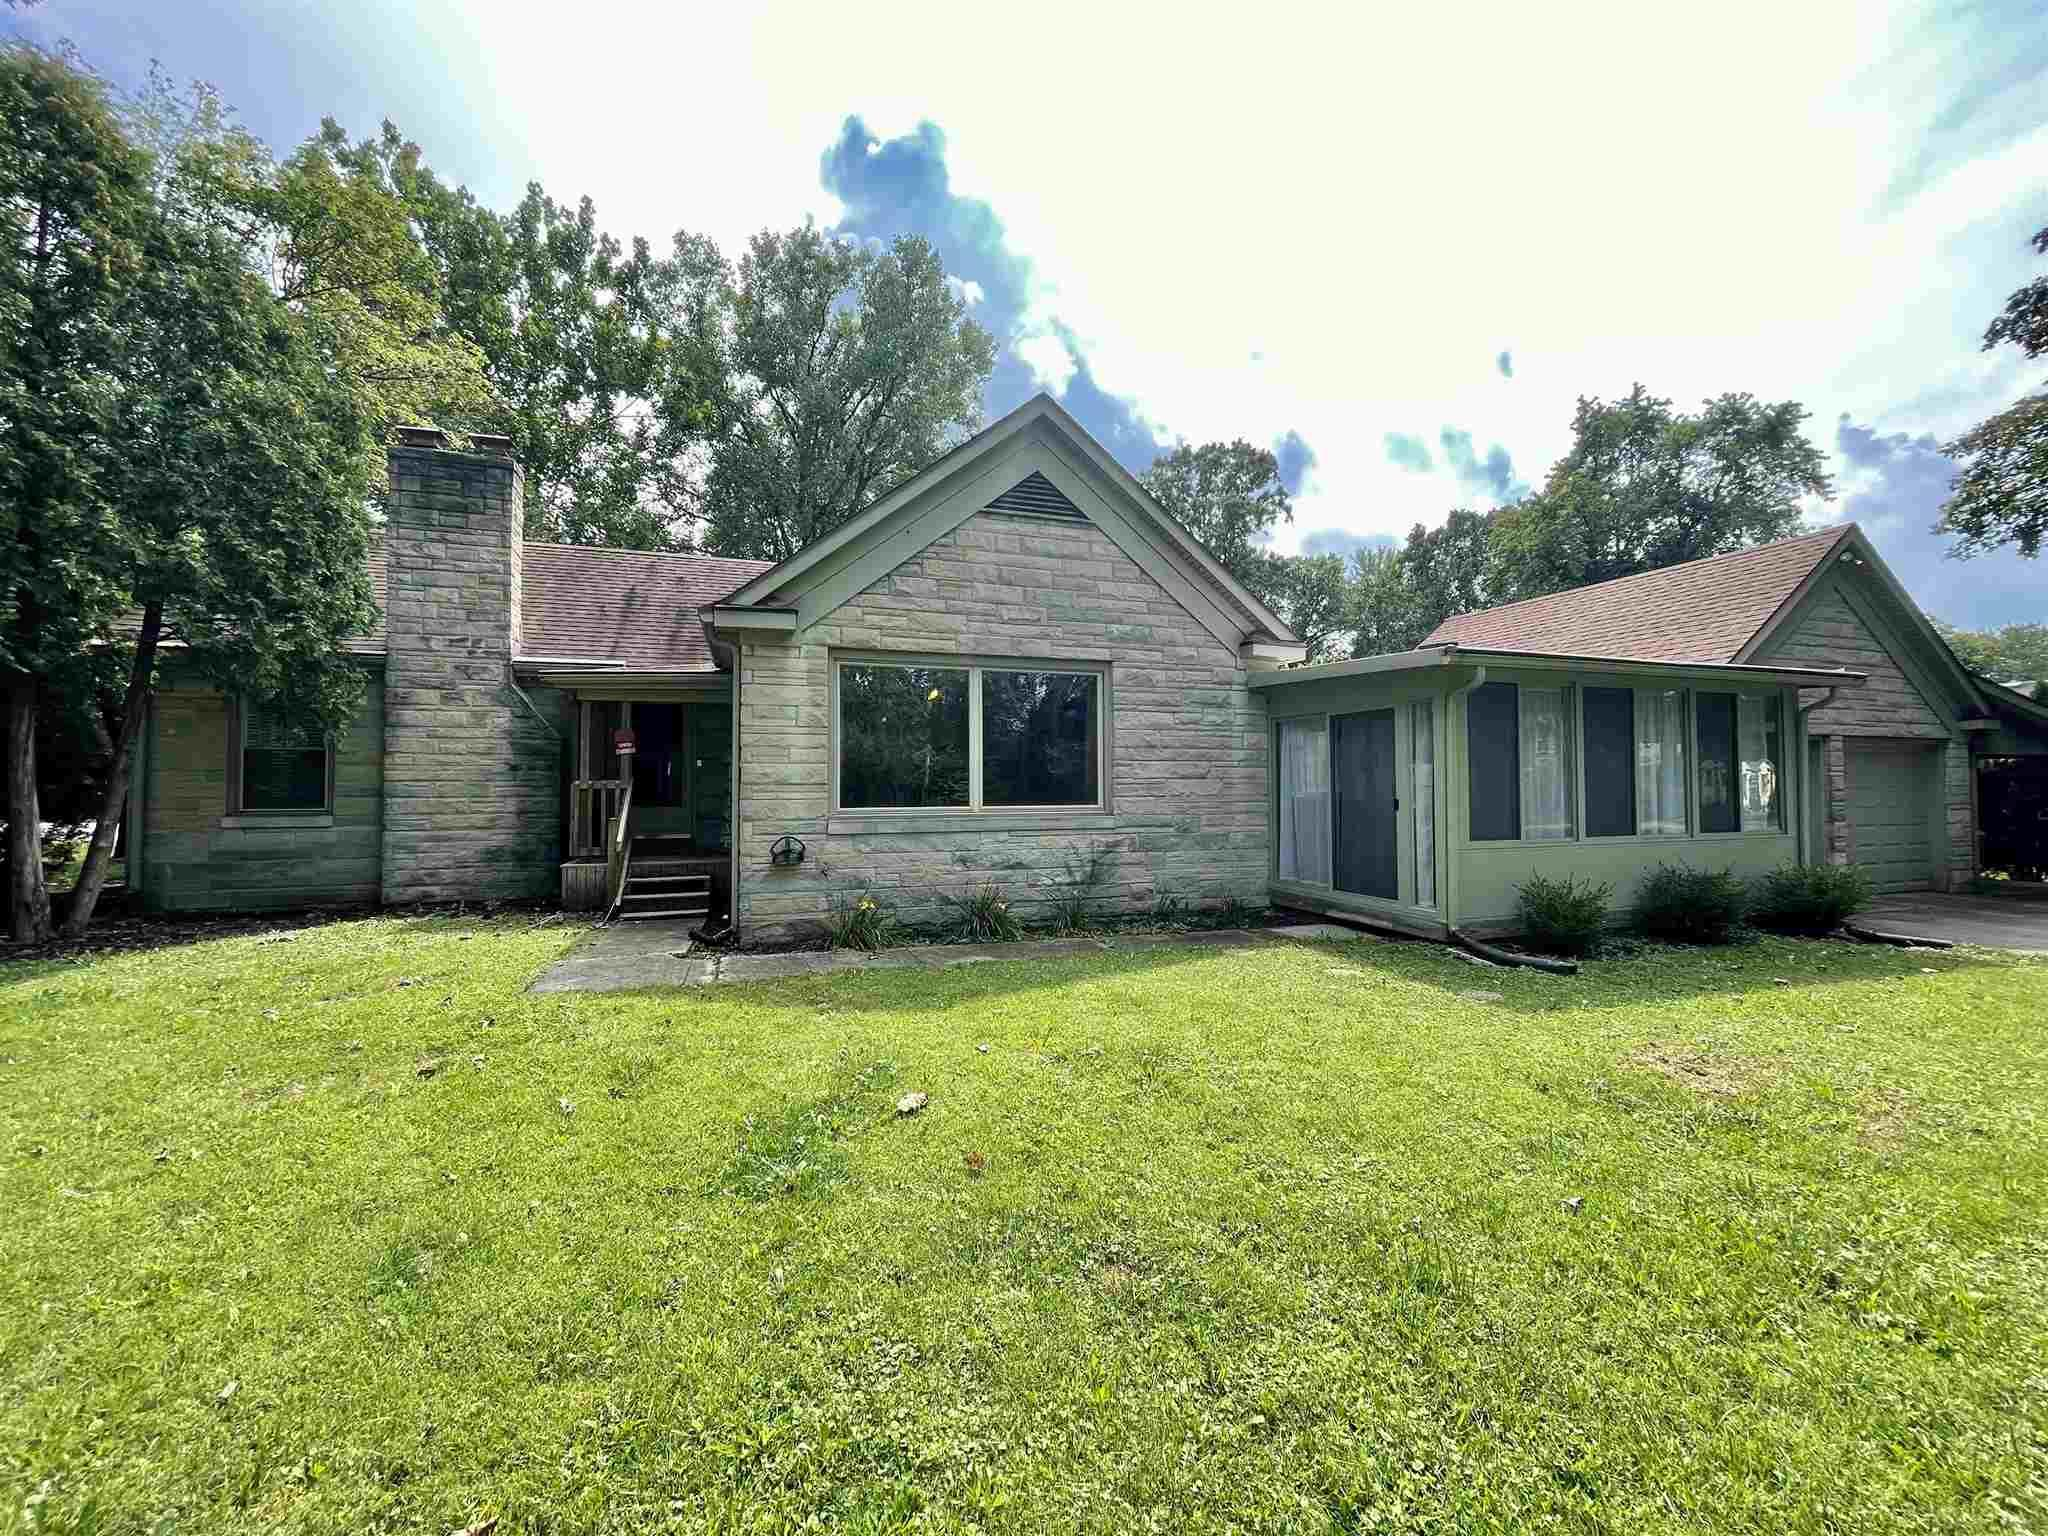 ** OPEN HOUSE SUNDAY 8/29 FROM 1PM to 4PM ** Retro and modern have collided on this STUNNING home! This ranch home sits on a massive full finished basement, has 3 bedrooms, 2 baths, all kitchen appliances stay, and the washer and dryer stay! With over 4000 square feet, there are endless ways to utilize the space. Every room of this house has its own special features that make this home so unique. With many large windows and picture windows, this home provides so much natural sunlight. There are TWO sun rooms and a 2 car attached garage with an extra covered space on the side. If this was your home, you would be conveniently located near Jefferson Point, the Lutheran Hospital, Target, and some of Fort Wayne's favorite restaurants. Do not miss out on your chance to see this charming home by scheduling your own personal private tour today!